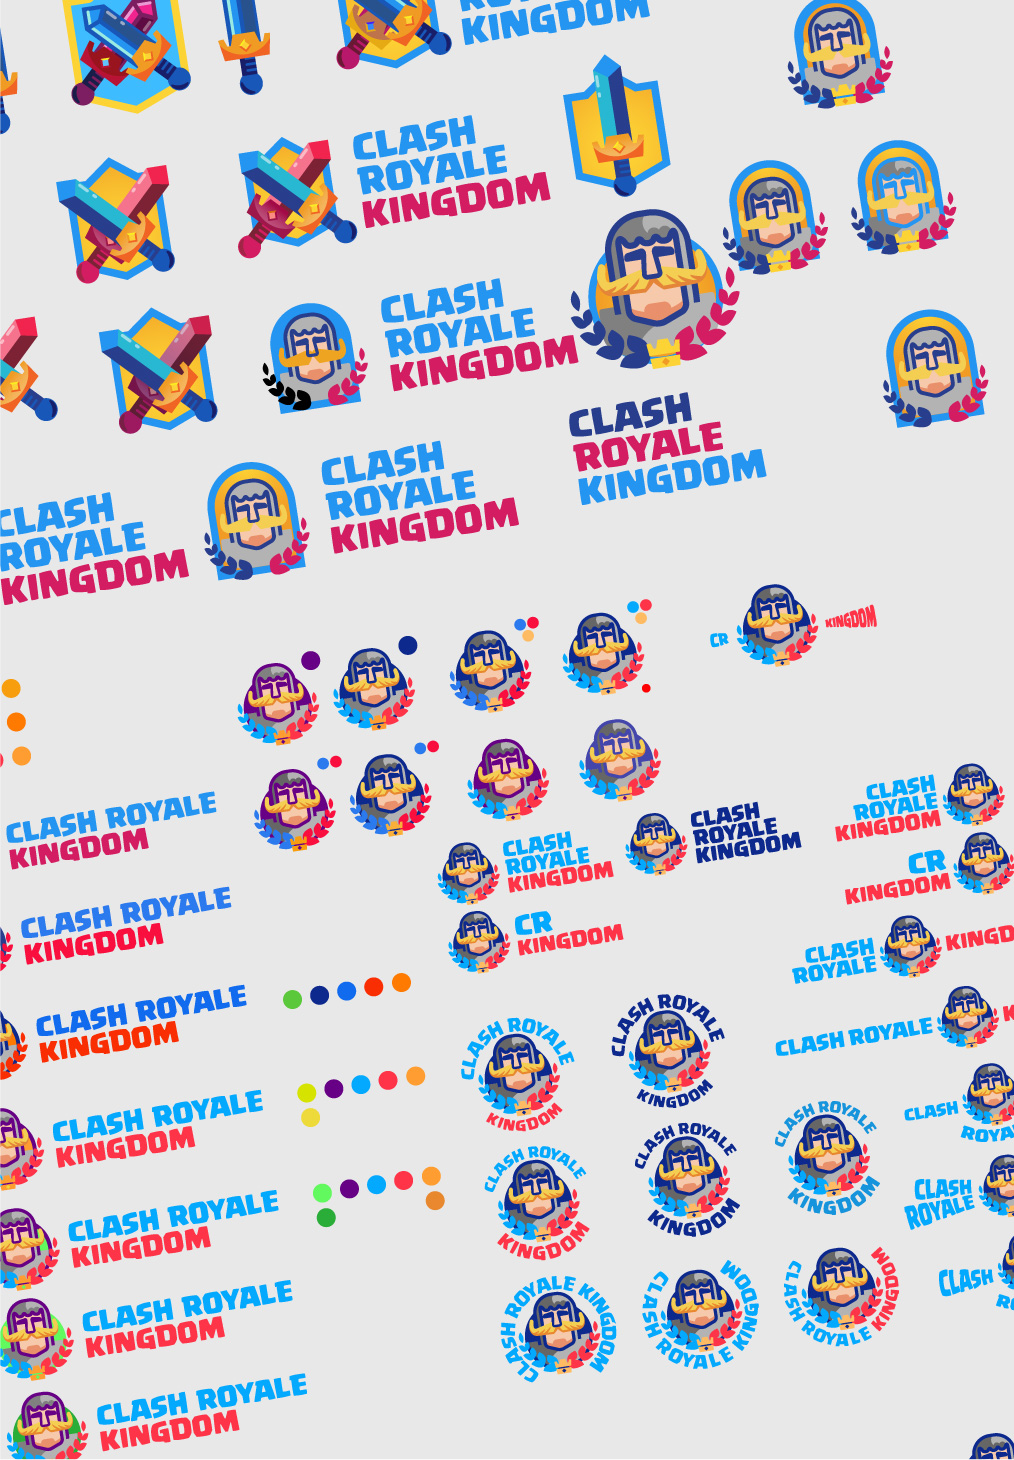 case study clash royale kingdom logo alternatives kiebrothers